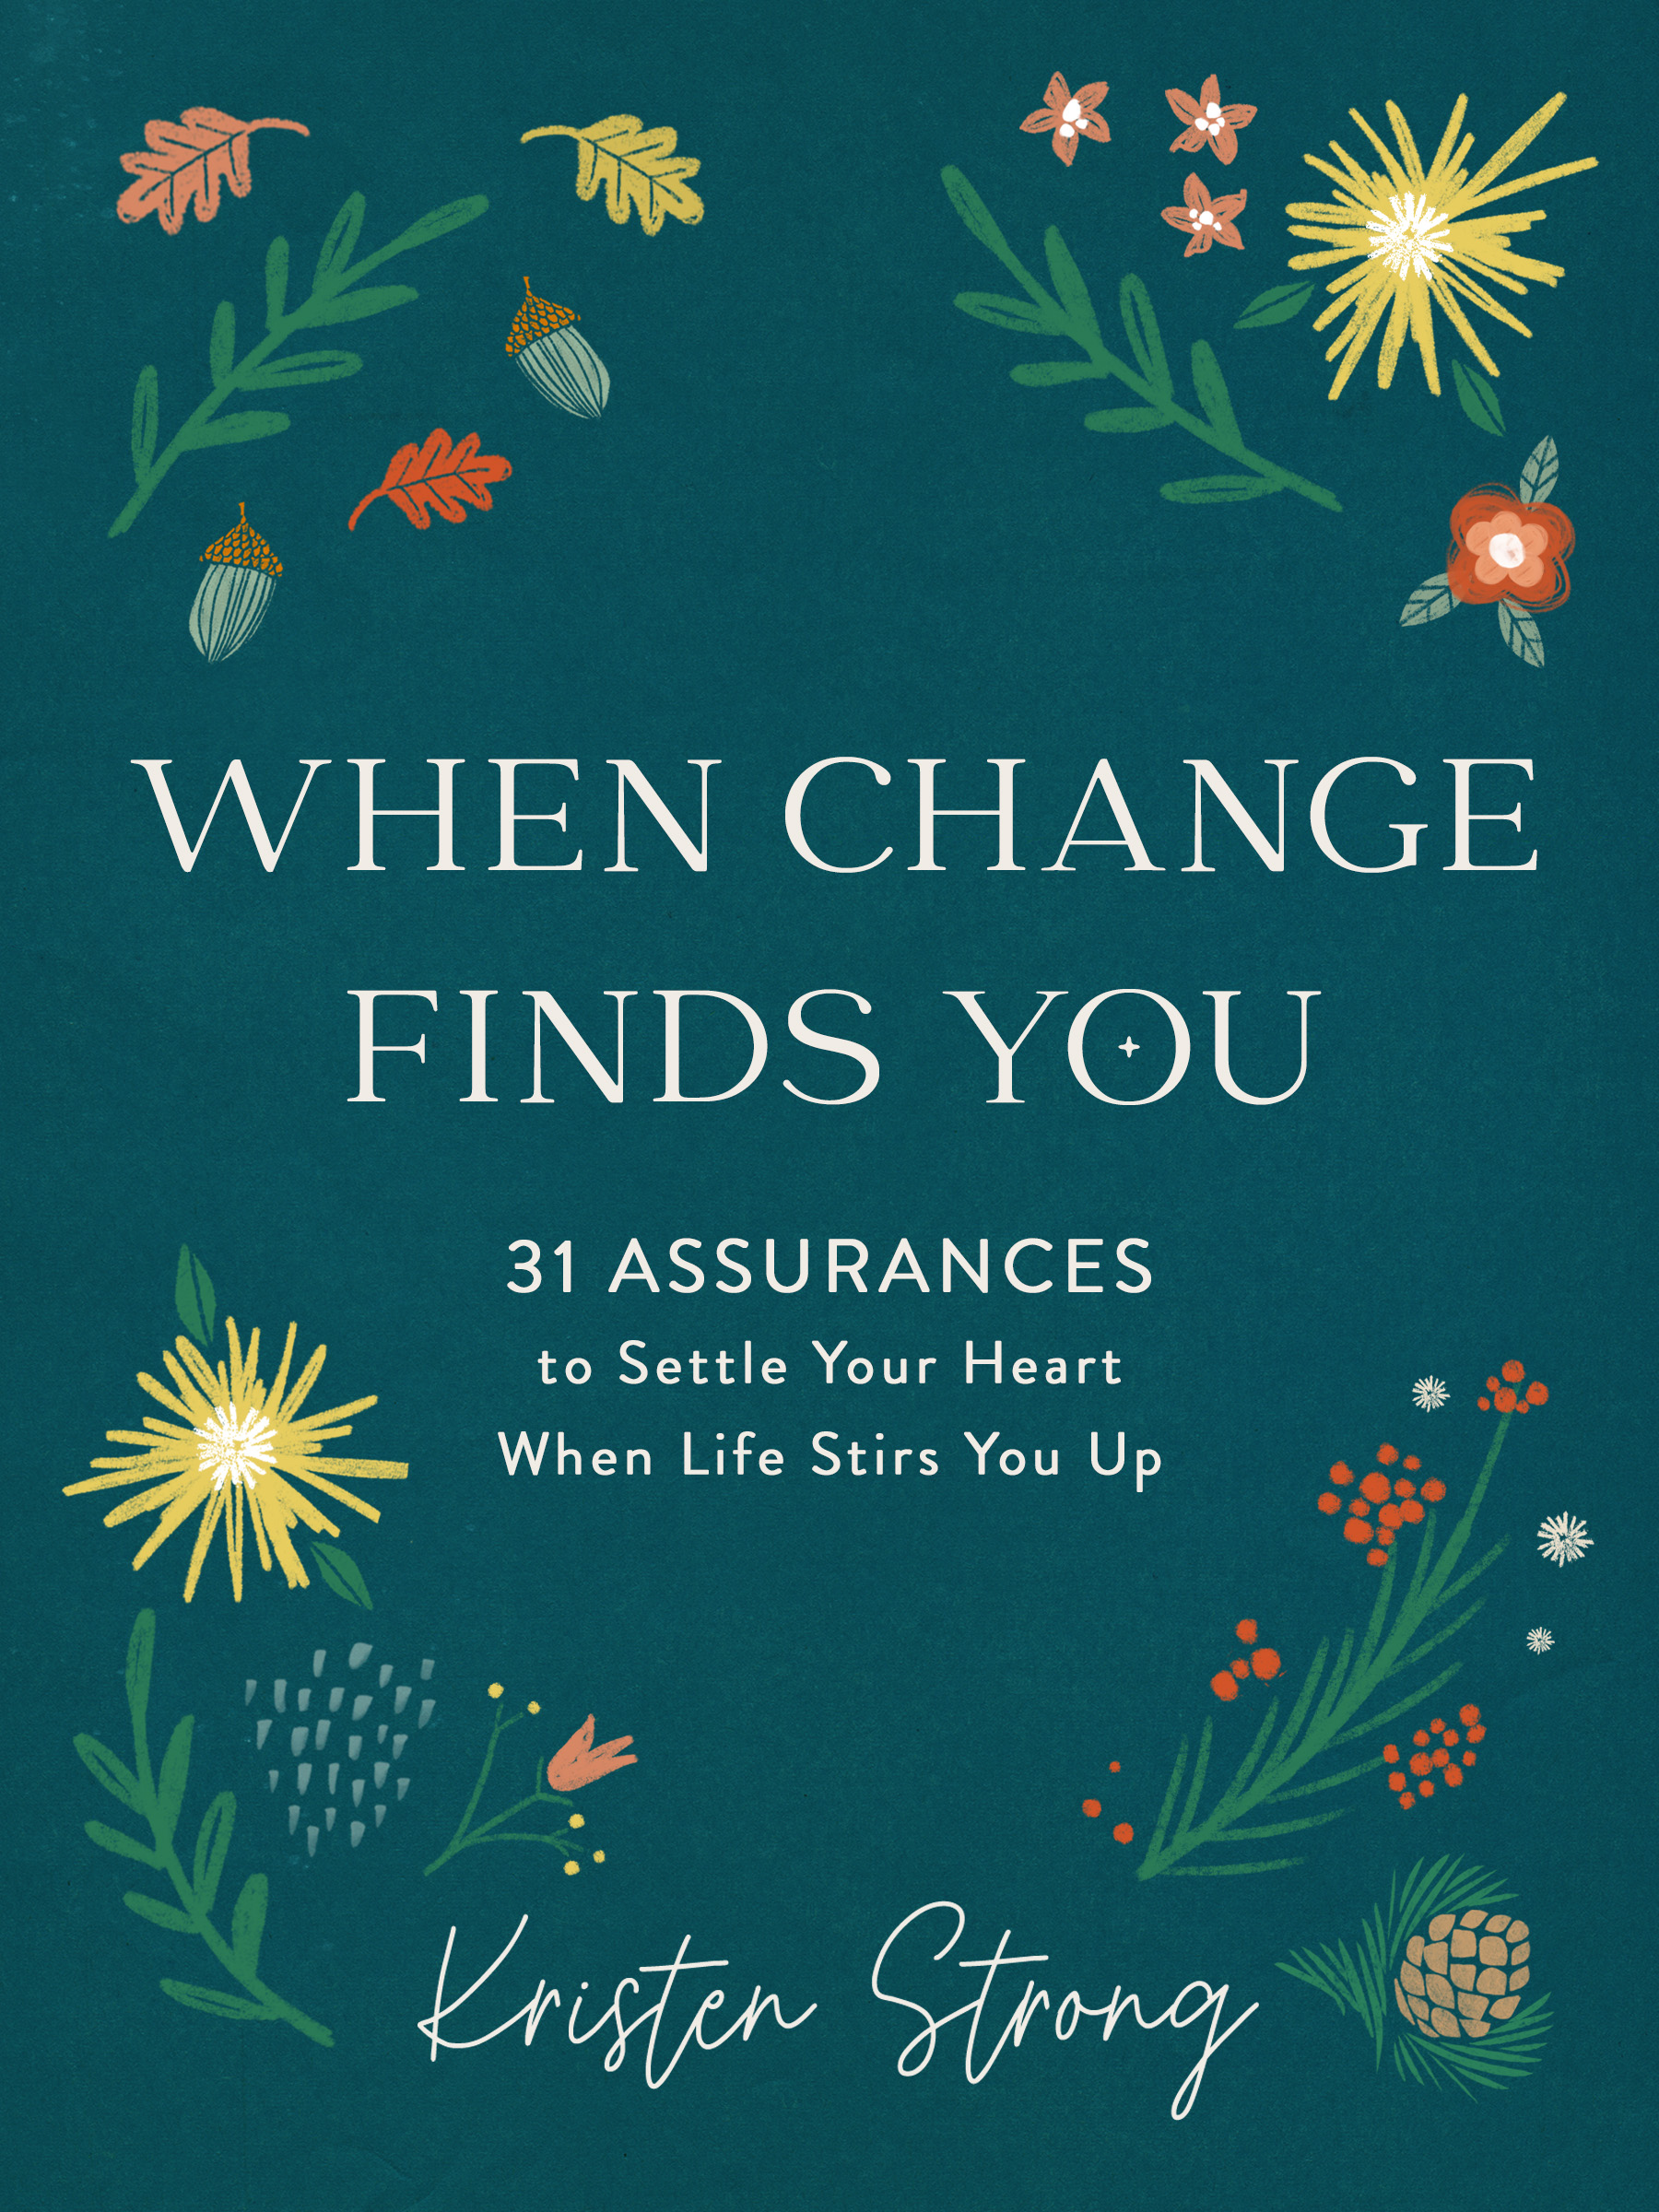 New Devotional Book! When Change Finds You: 31 Assurances to Settle Your Heart When Life Stirs You Up